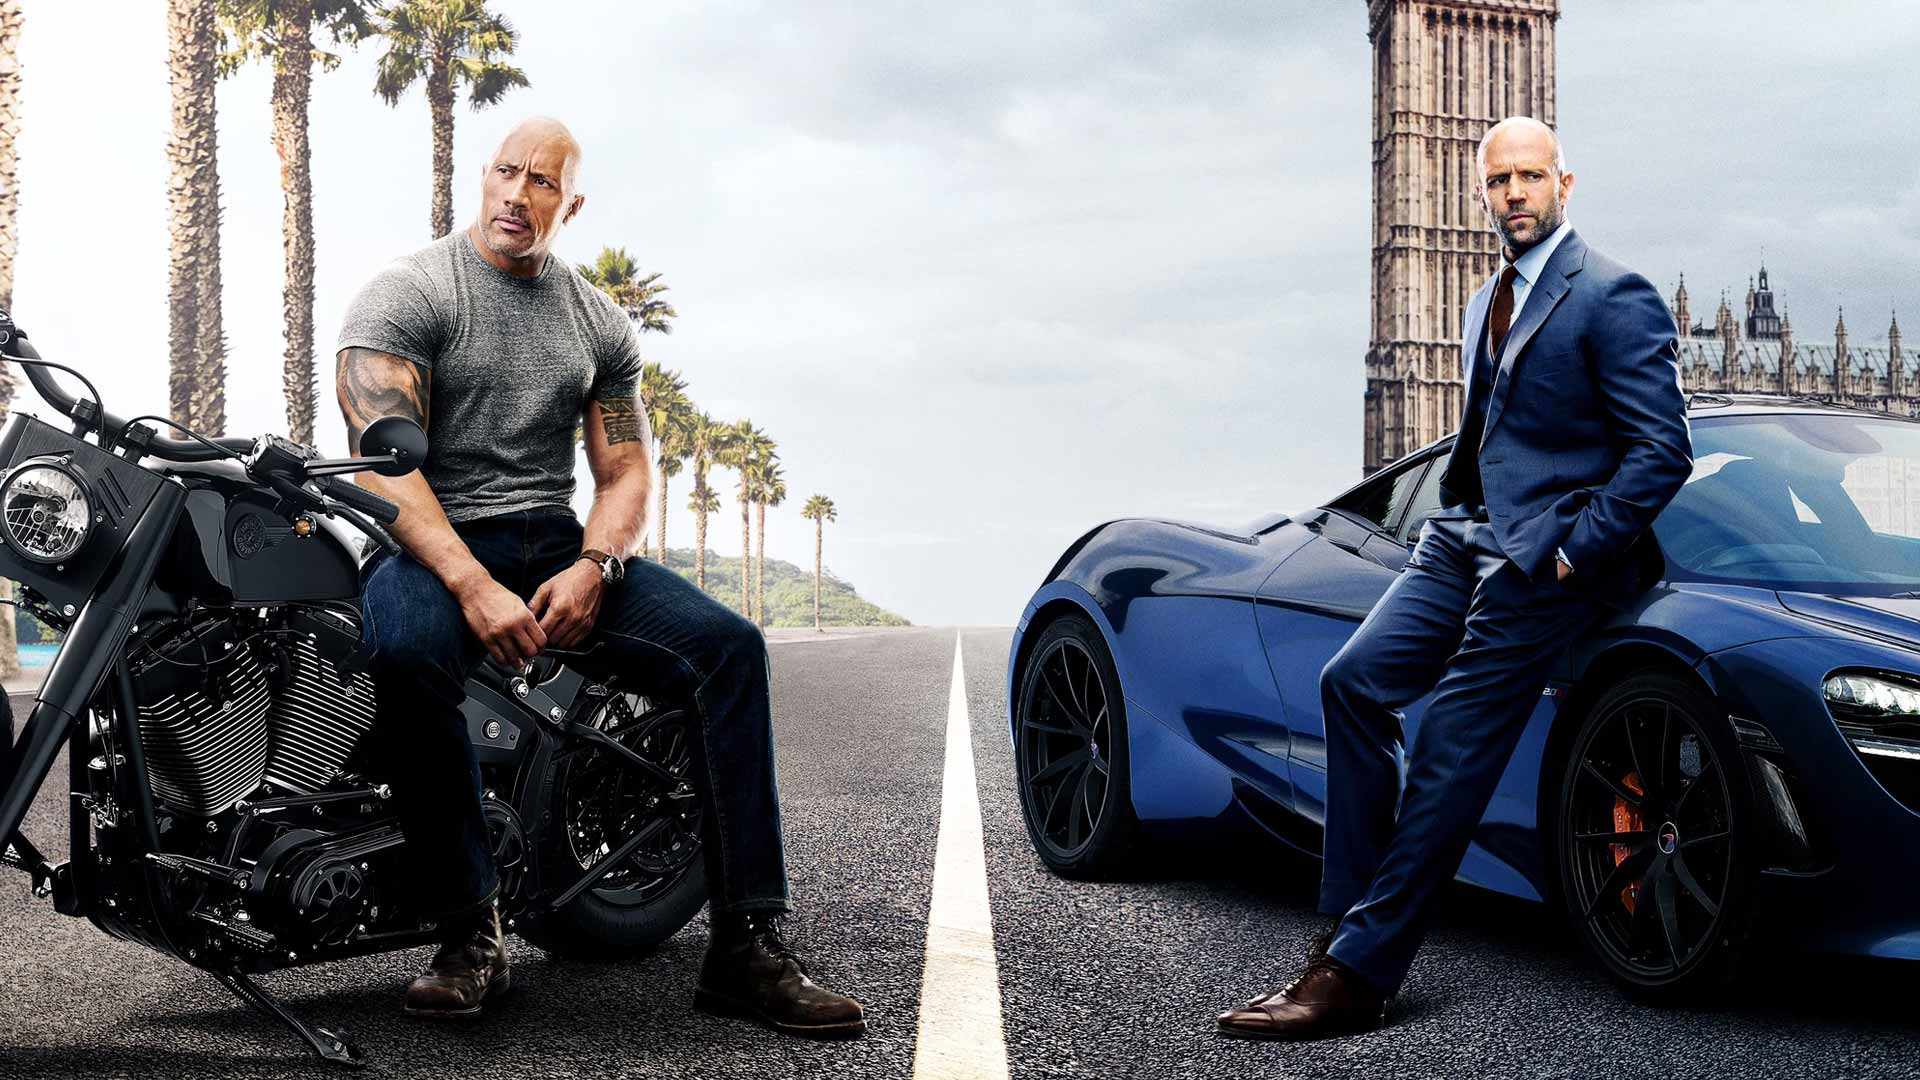 Badcasting 'Fast & Furious Presents: Hobbs & Shaw'